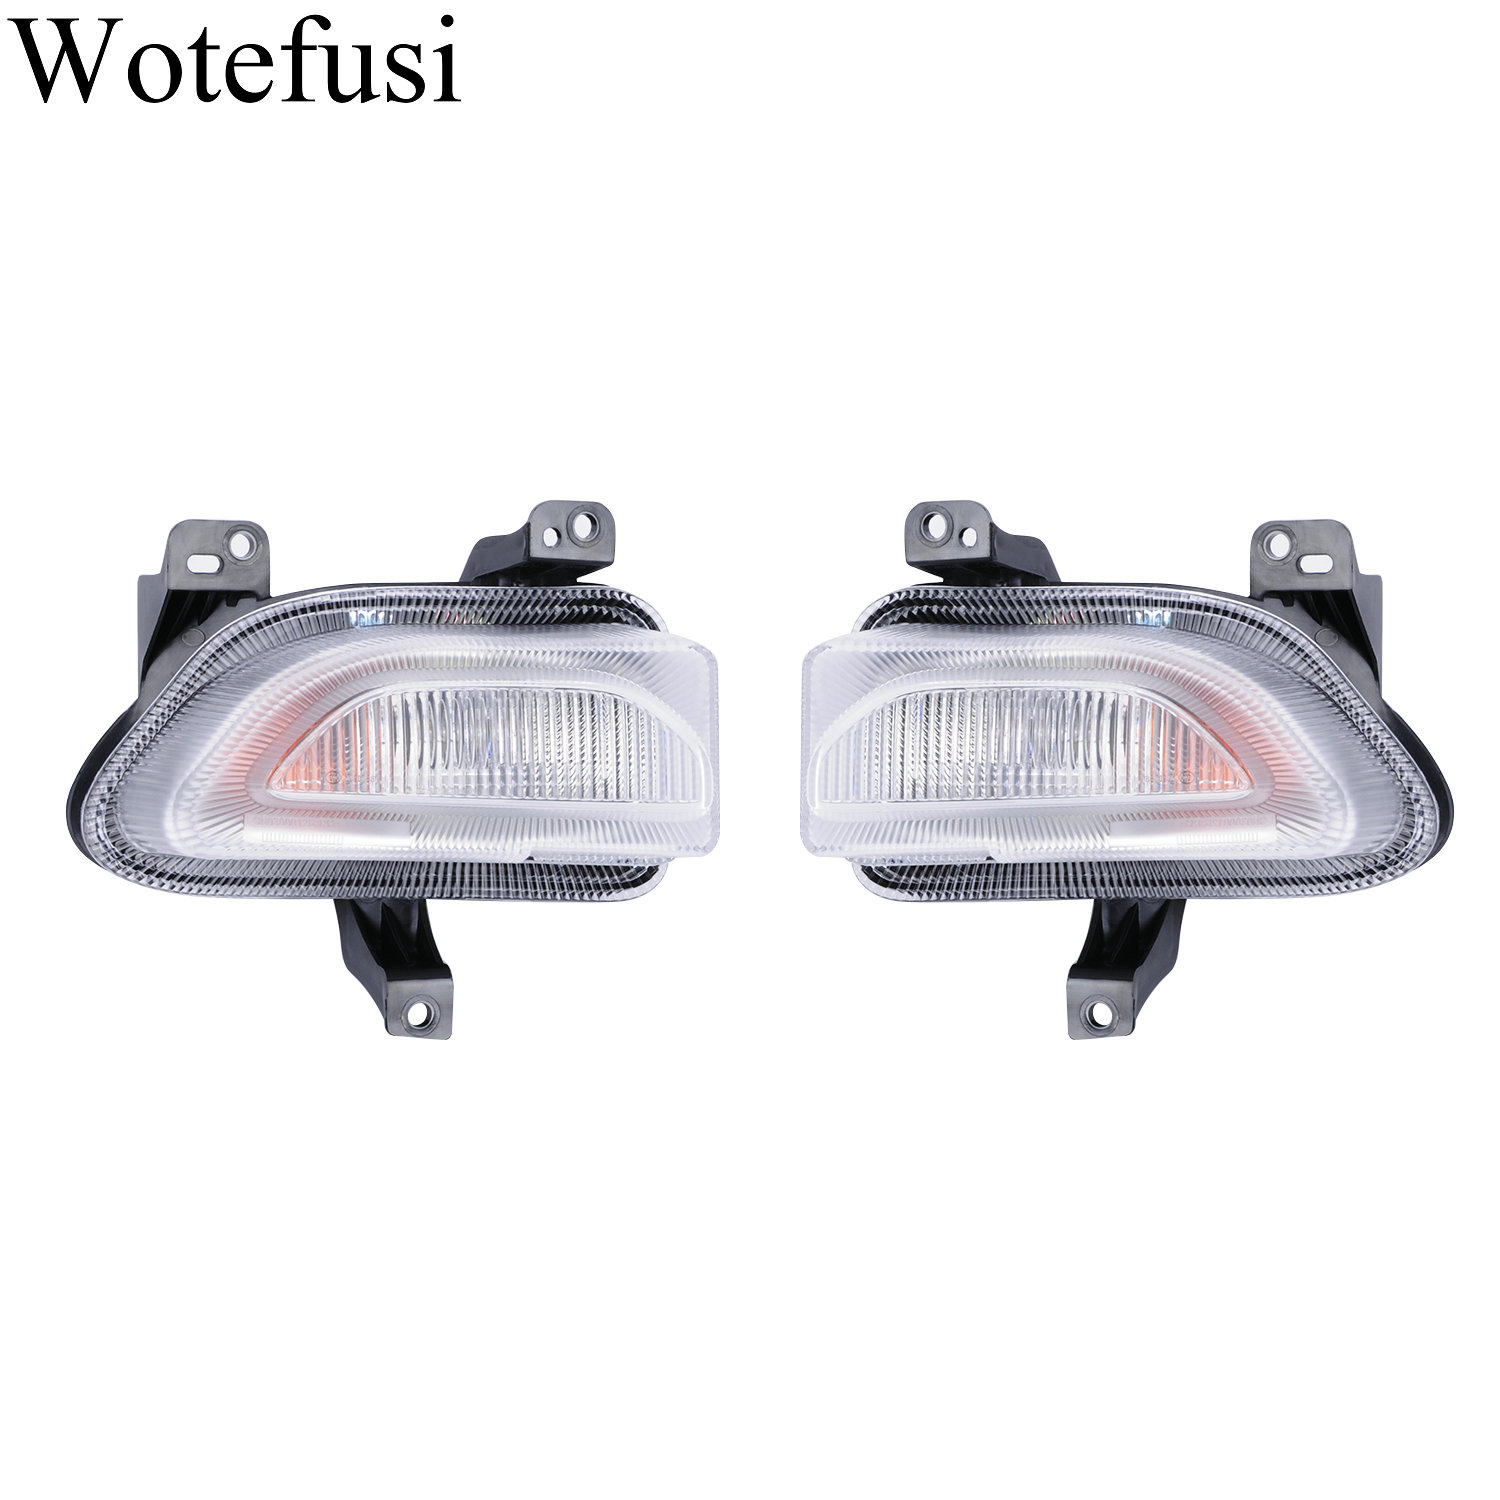 Wotefusi 2pcs Car ABS Plastic Daily lights Fit for Jeep Renegade Before 2018 [QPA640]|Lamp Hoods|   - title=